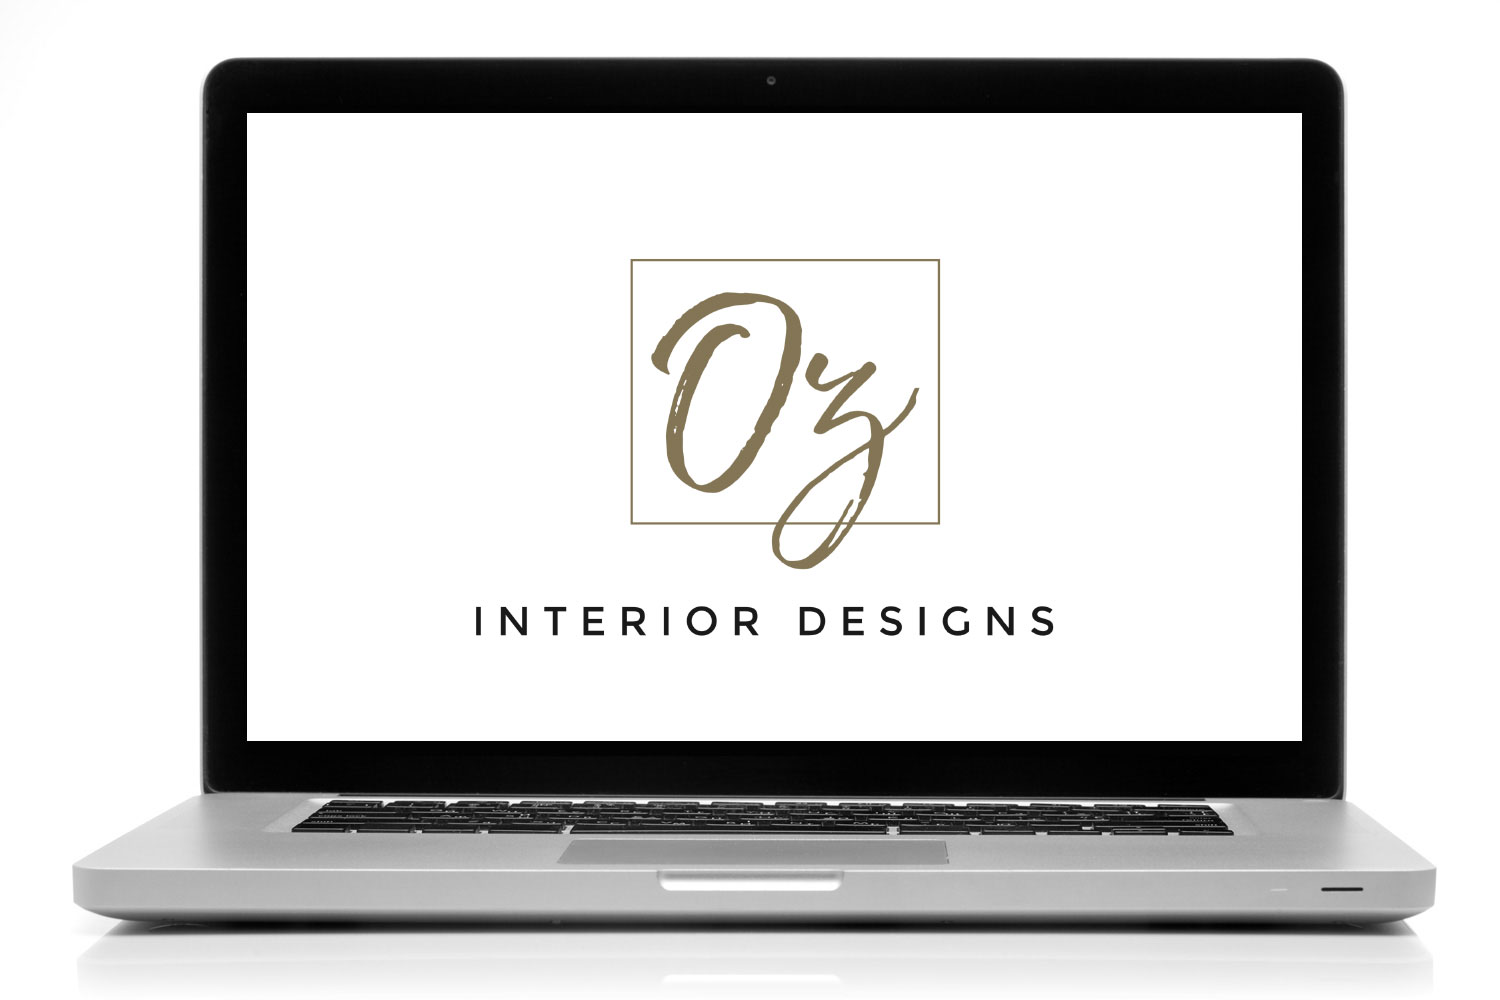 Oz Interior Designs